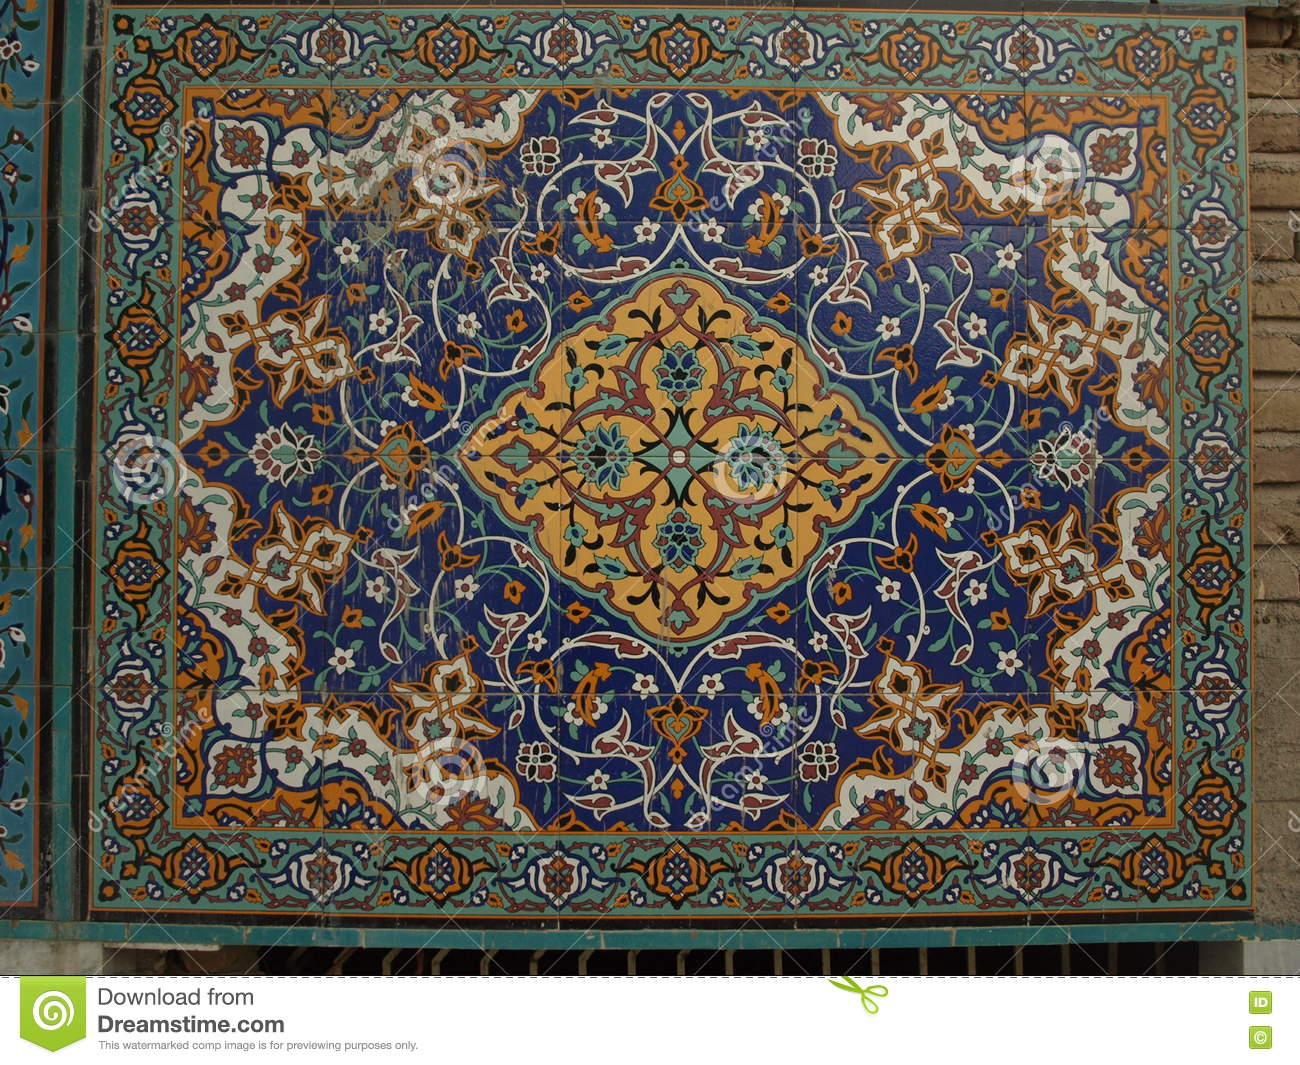 Mosaic In Shrine Of Hazrat Ali, Mazar-i-Sharif  Stock Photo - Image